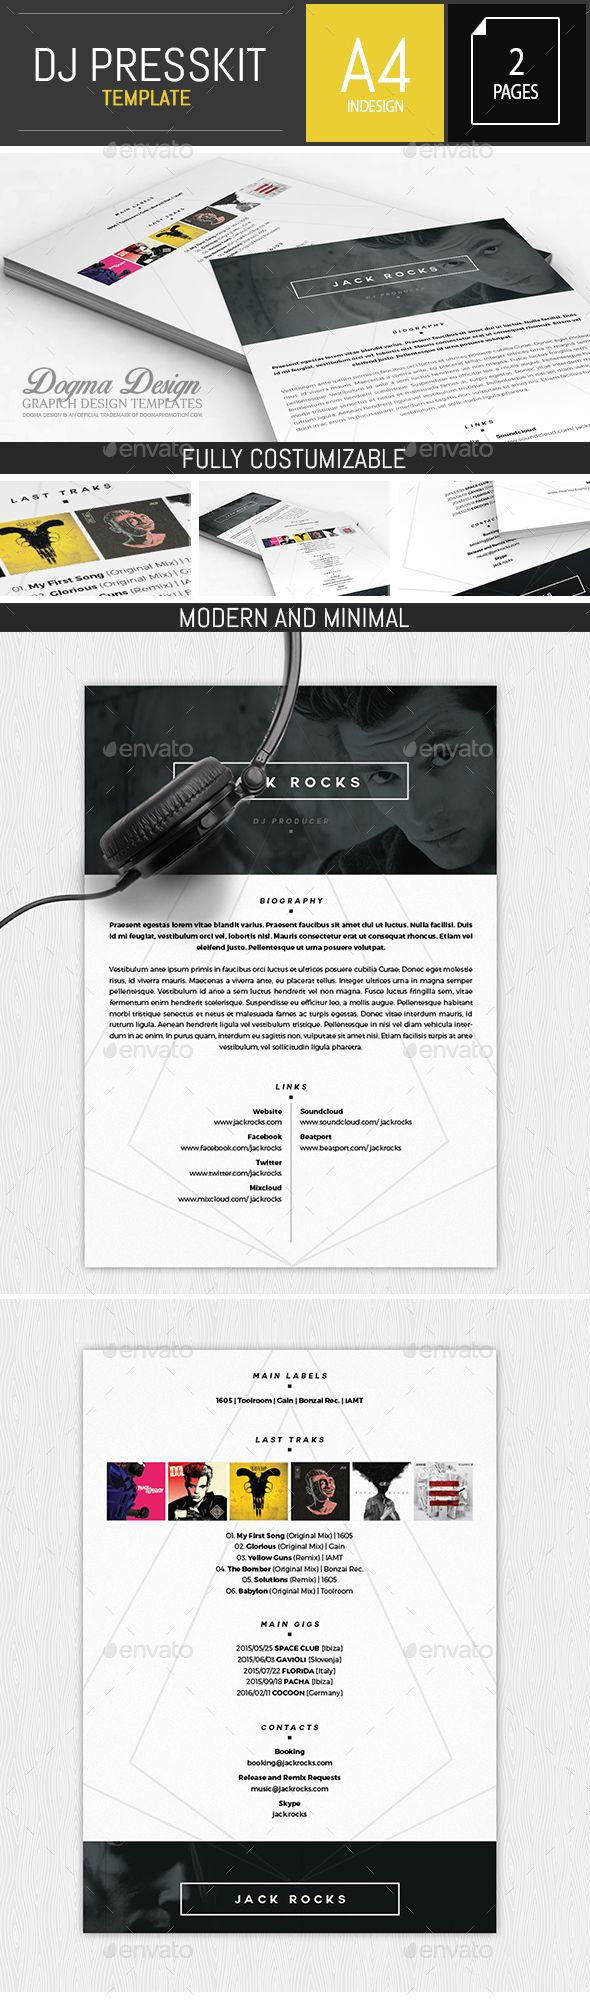 7 best davidson ospina epk press kit images on pinterest for Dj biography template